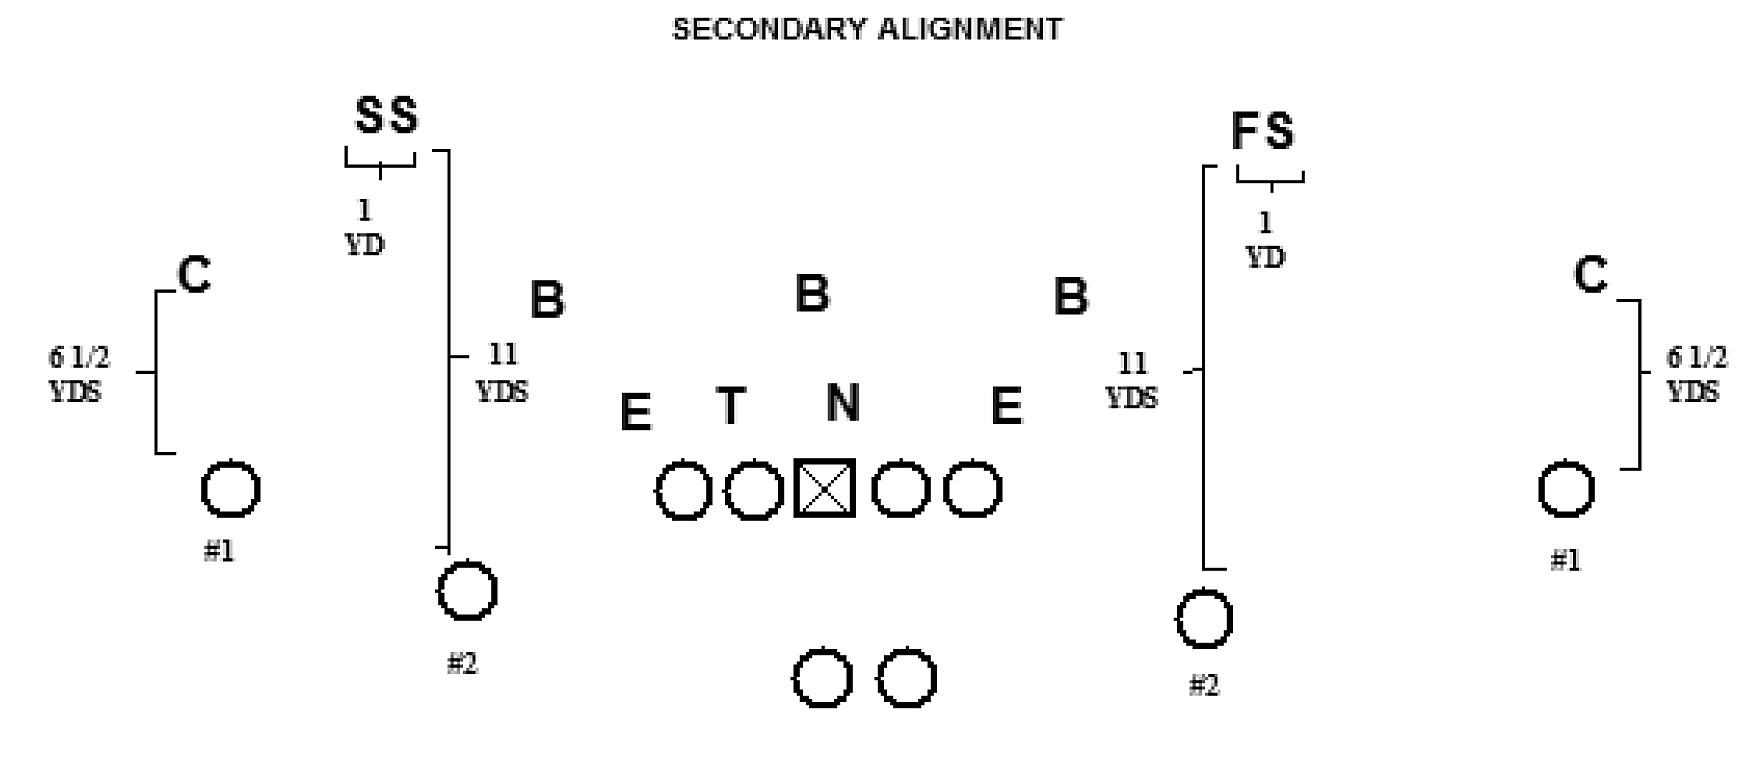 4-4 defense alignment